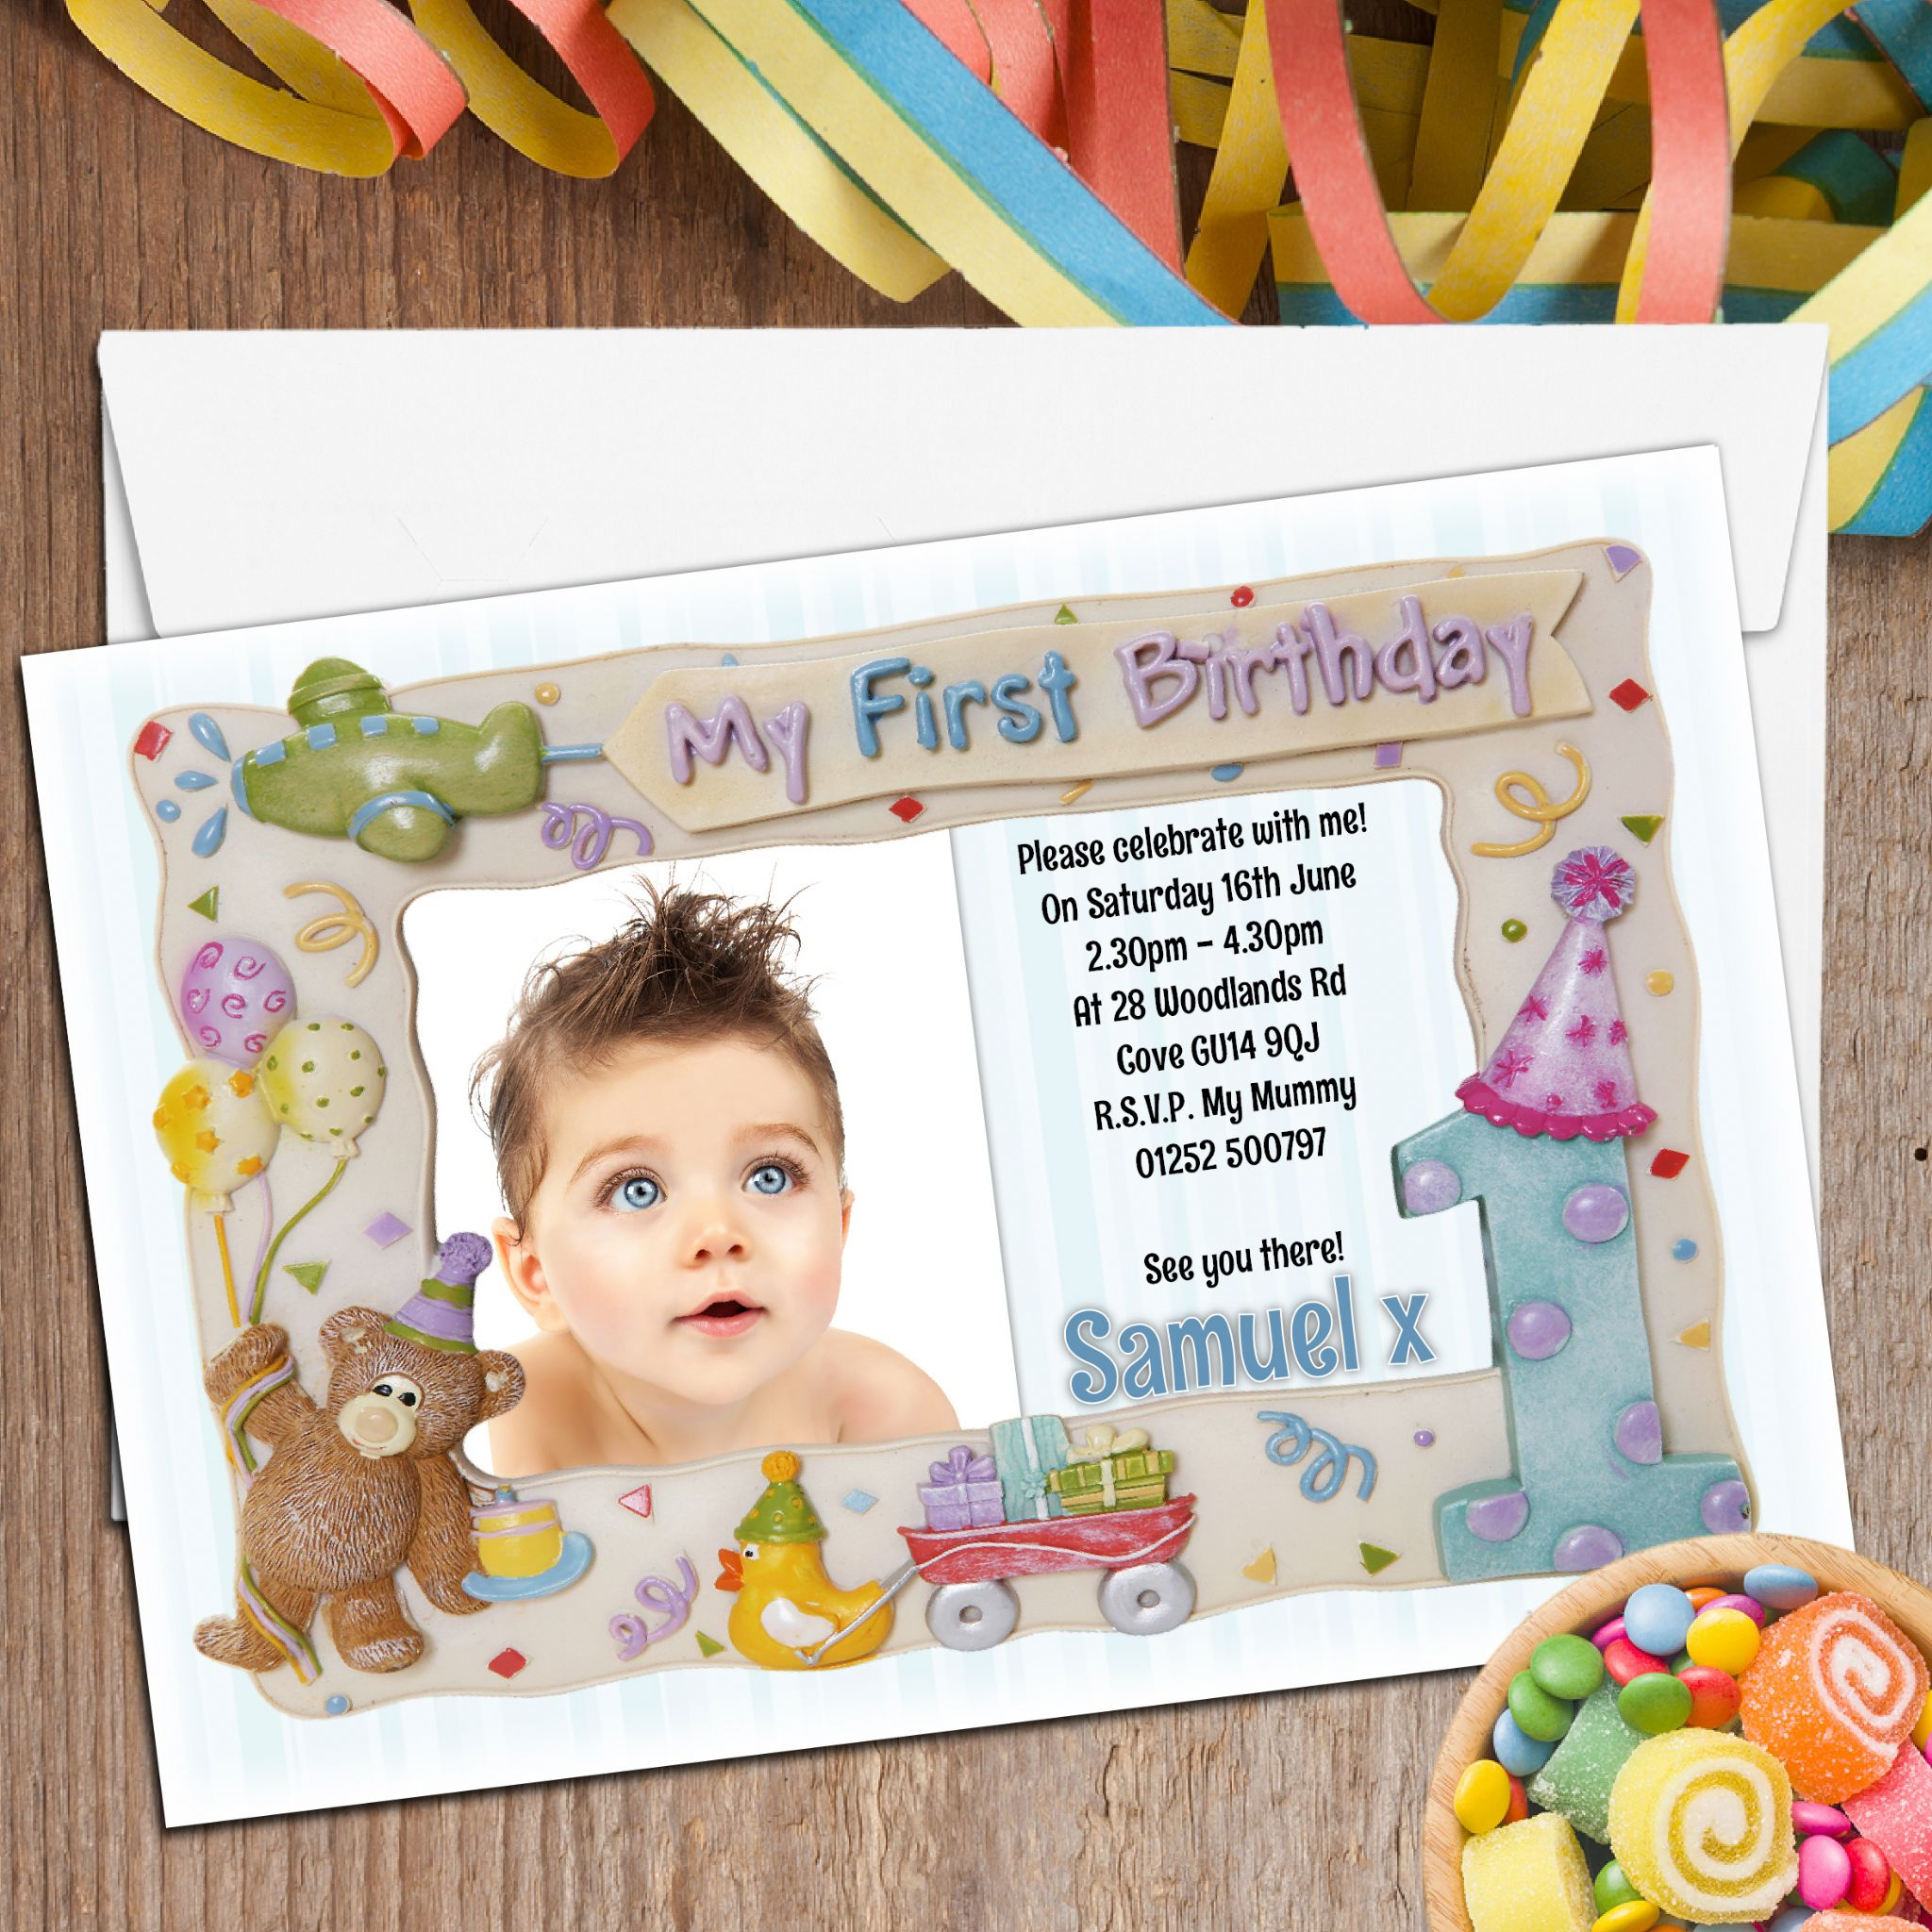 10 personalised first 1st birthday party frame photo invitations n2 filmwisefo